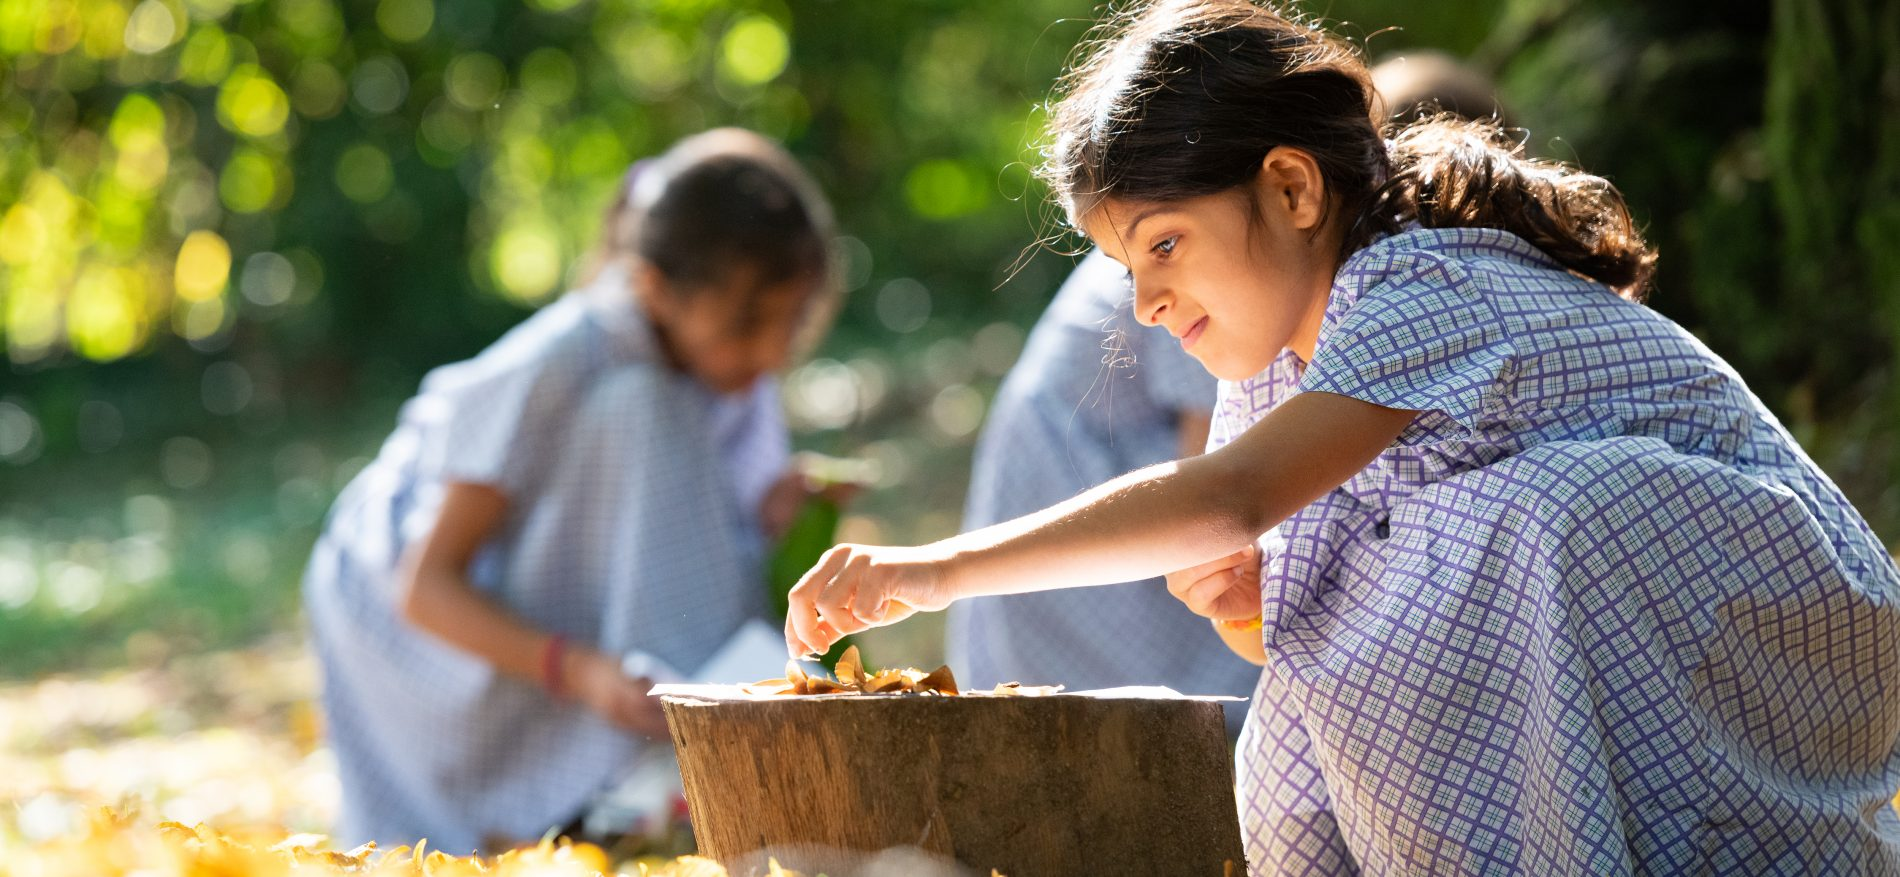 A school girl picking up leaves to add to a tree stump